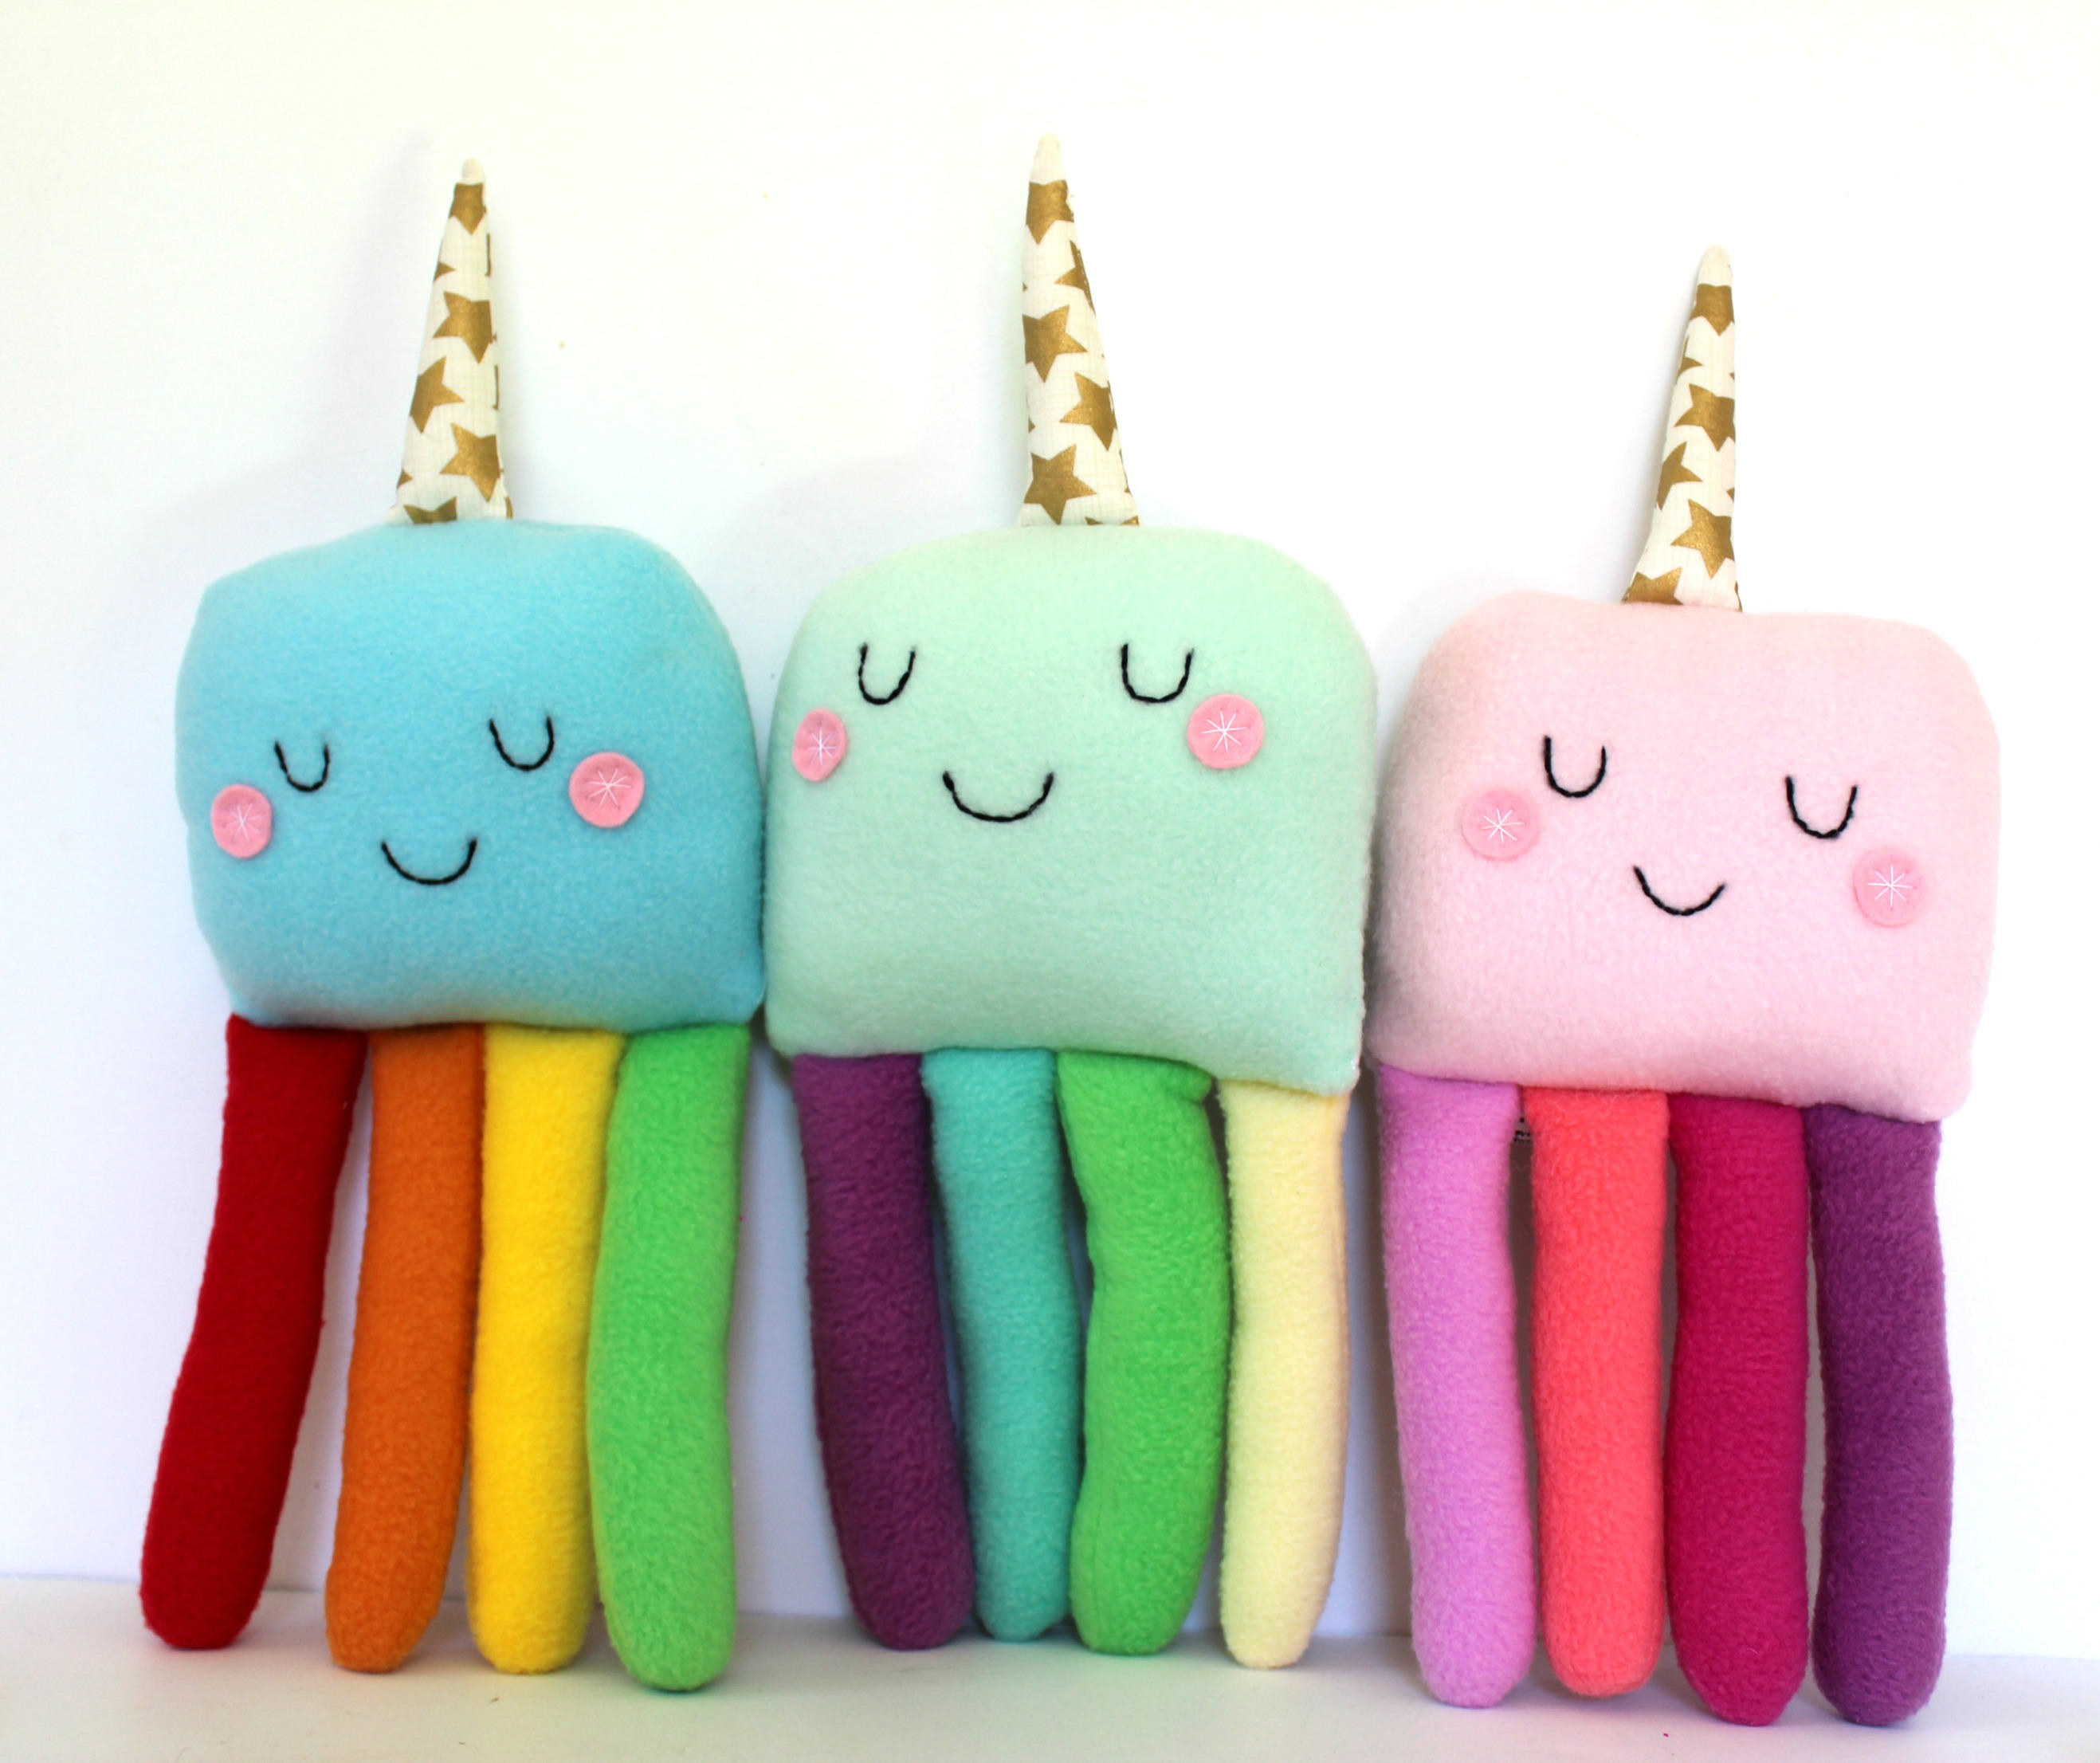 different colored cute plushes with a unicorn horn and four tentacles each